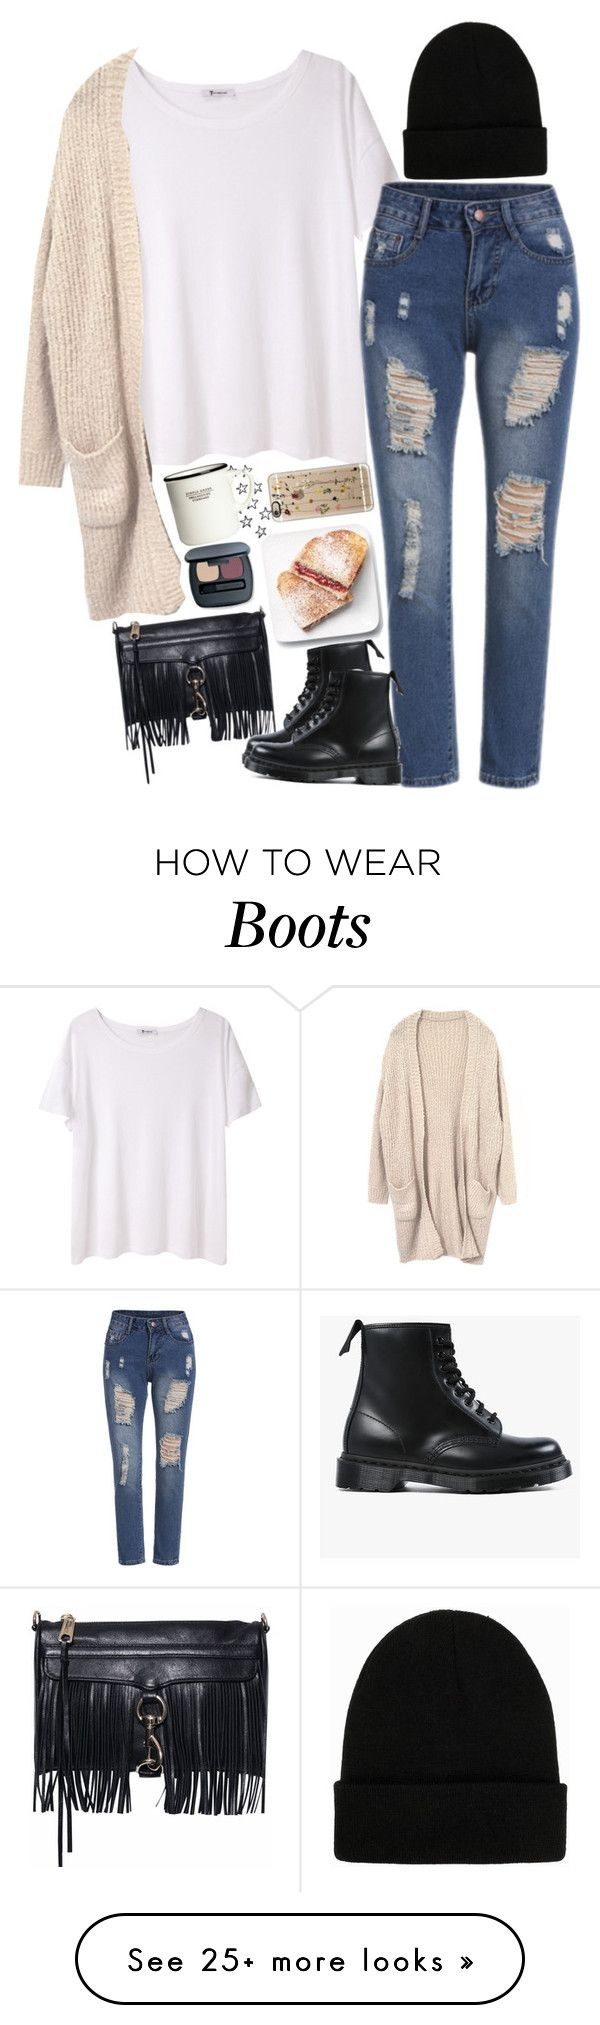 """""""Untitled #2401"""" by sisistyle on Polyvore featuring T By Alexander Wang, Rebecca Minkoff, Dr. Martens, NLY Accessories, Casetify and H&M"""